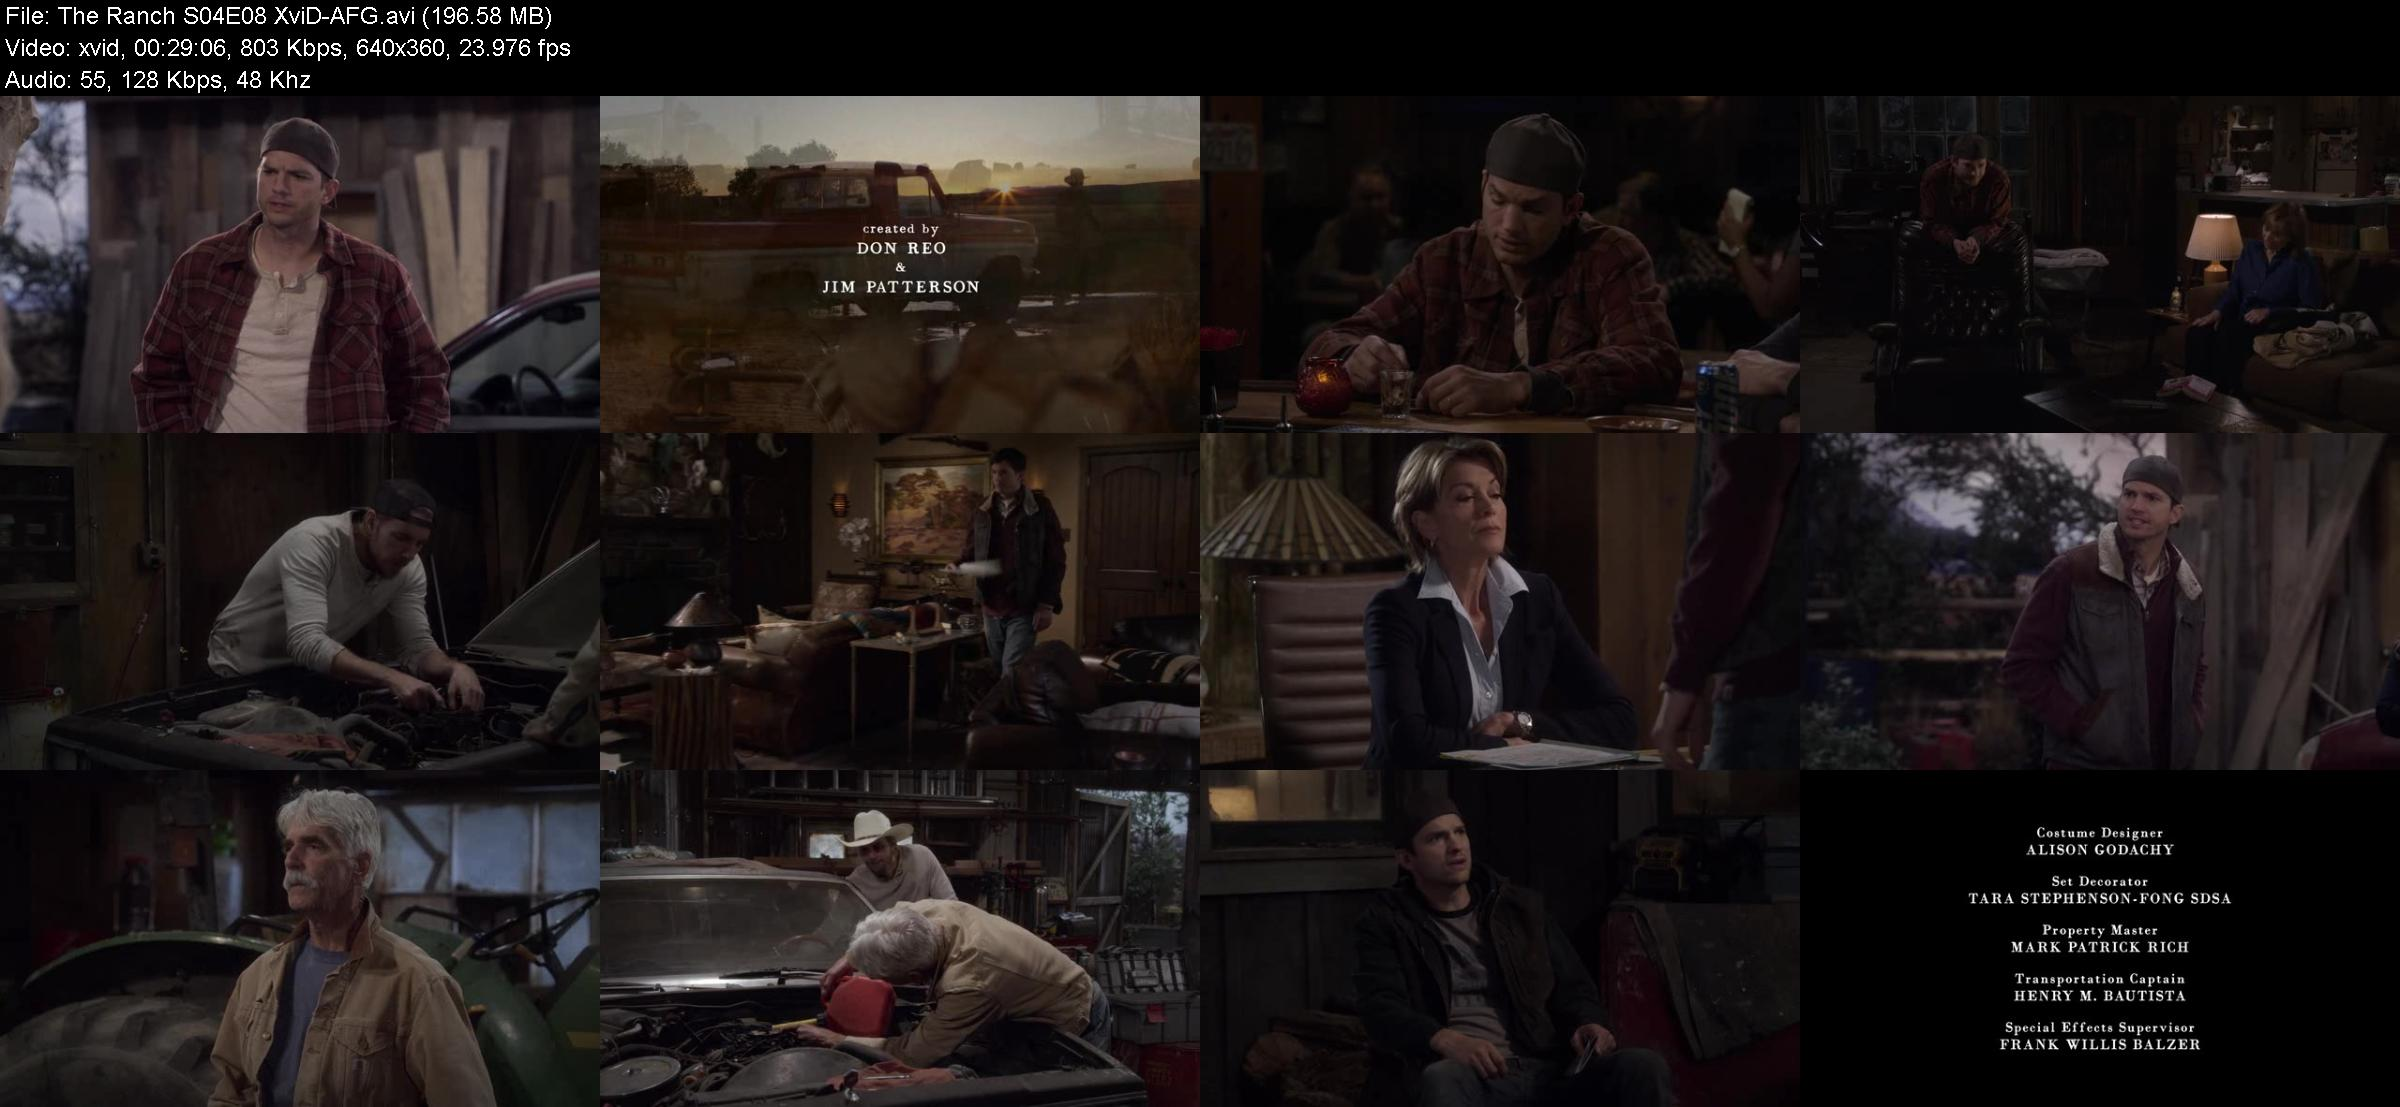 The Ranch S04E08 XviD-AFG